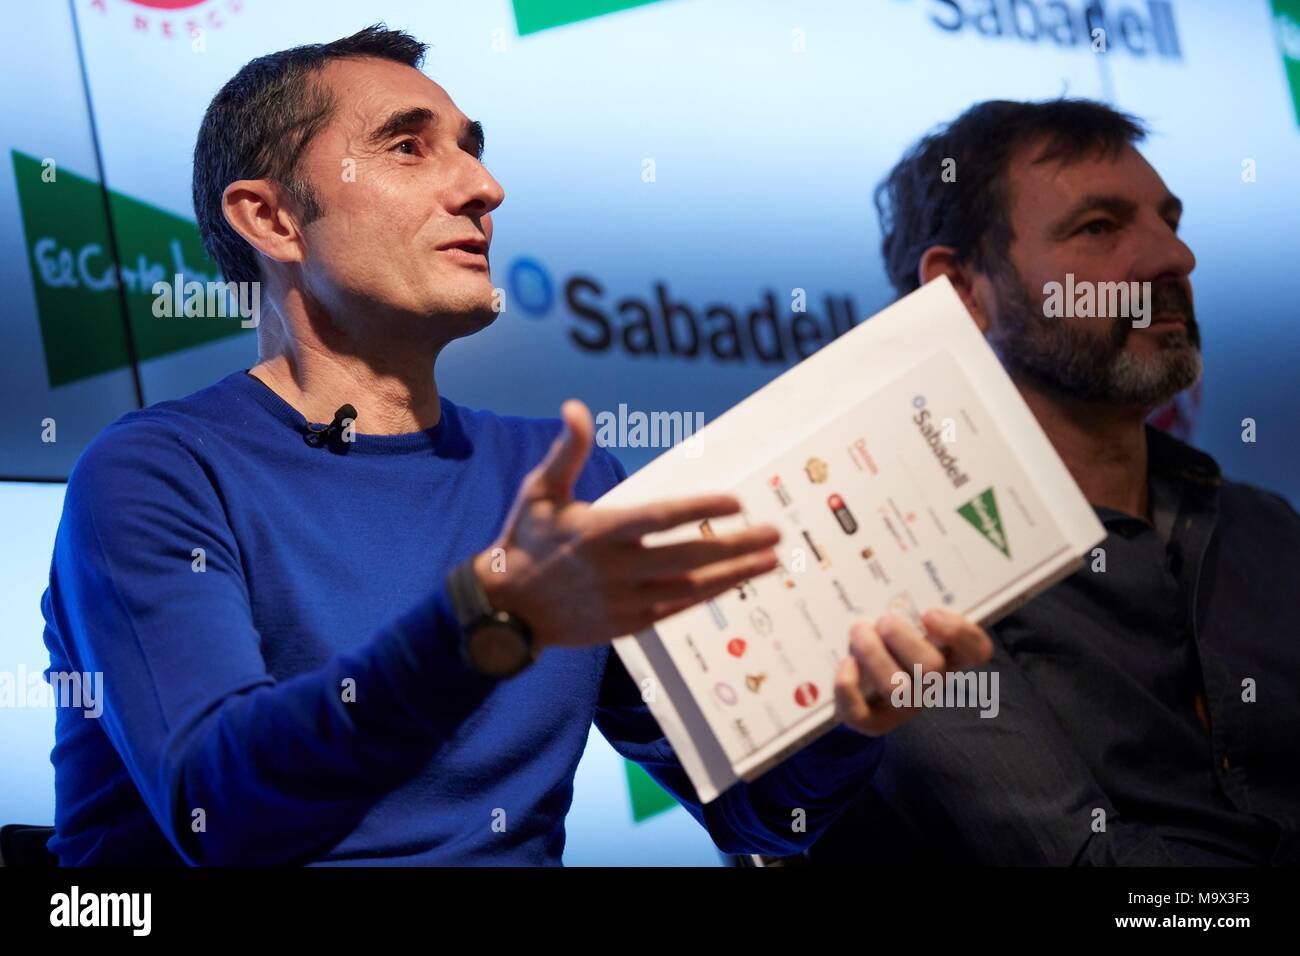 Barcelona, Spain. 28th Mar, 2018. FC Barcelona's head coach Ernesto Valverde(L) and Peesident of Spanish NGO Proactiva Open Arms, Oscar Camps (R), speak during the presentation of the book 'Relatos Solidarios del Deporte' (lit. Solidary Sports Stories) in Barcelona, north eastern Spain, 28 March 2018. The book aims to raise funds for Spanish NGO Proactiva Open Arms, dedicated to sea rescue of migrants in the Mediterranean. Credit: Enric Fontcuberta/EFE/Alamy Live News - Stock Image